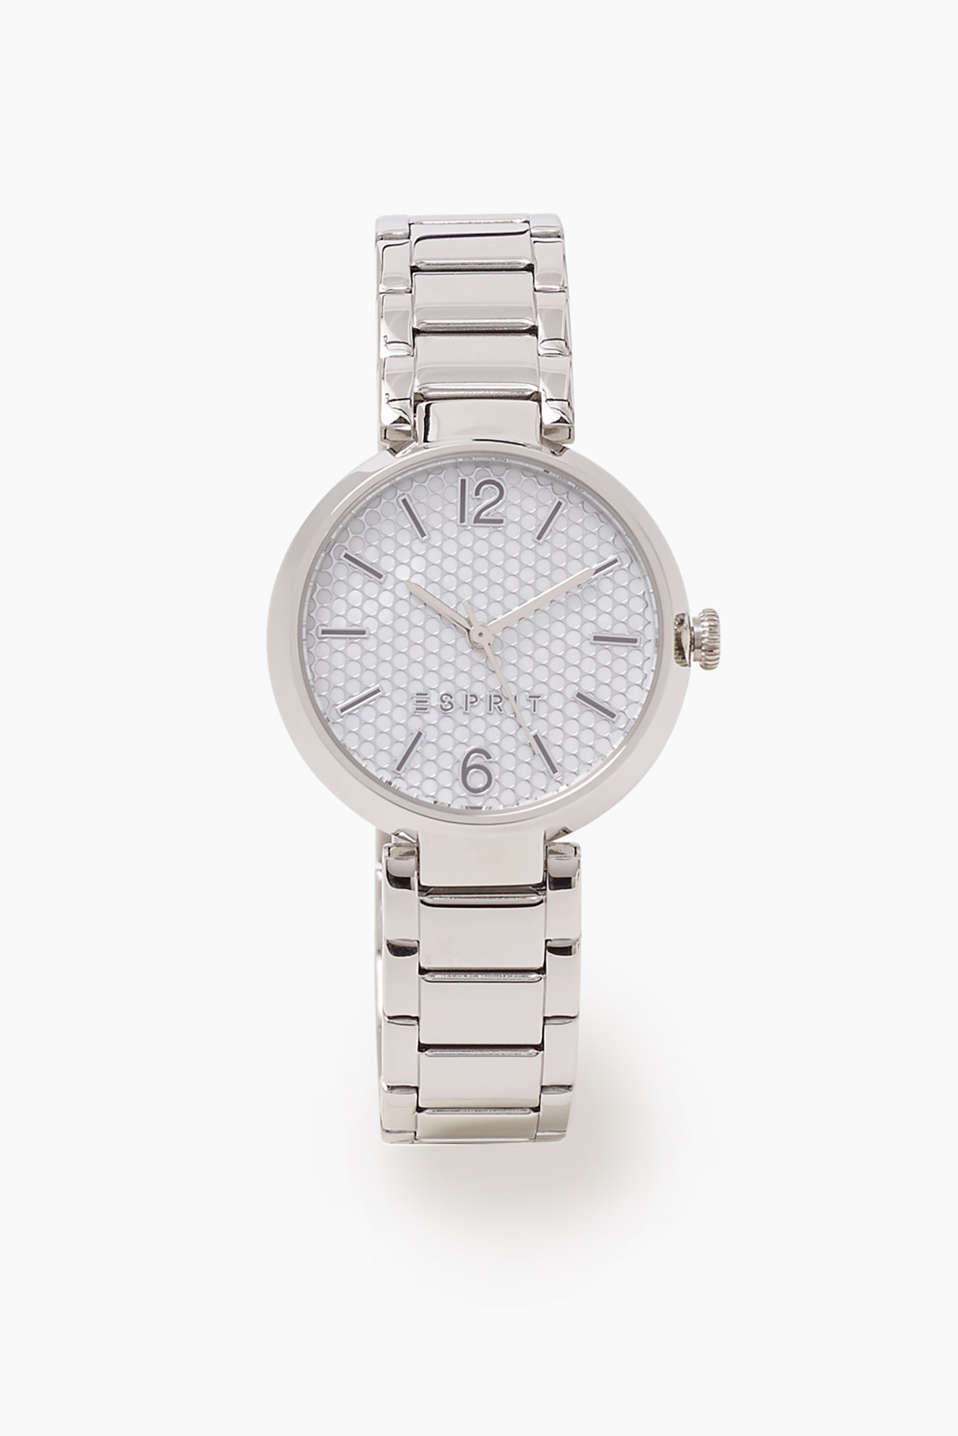 Silver tone wrist watch with a dial in a striking, reflective scale look